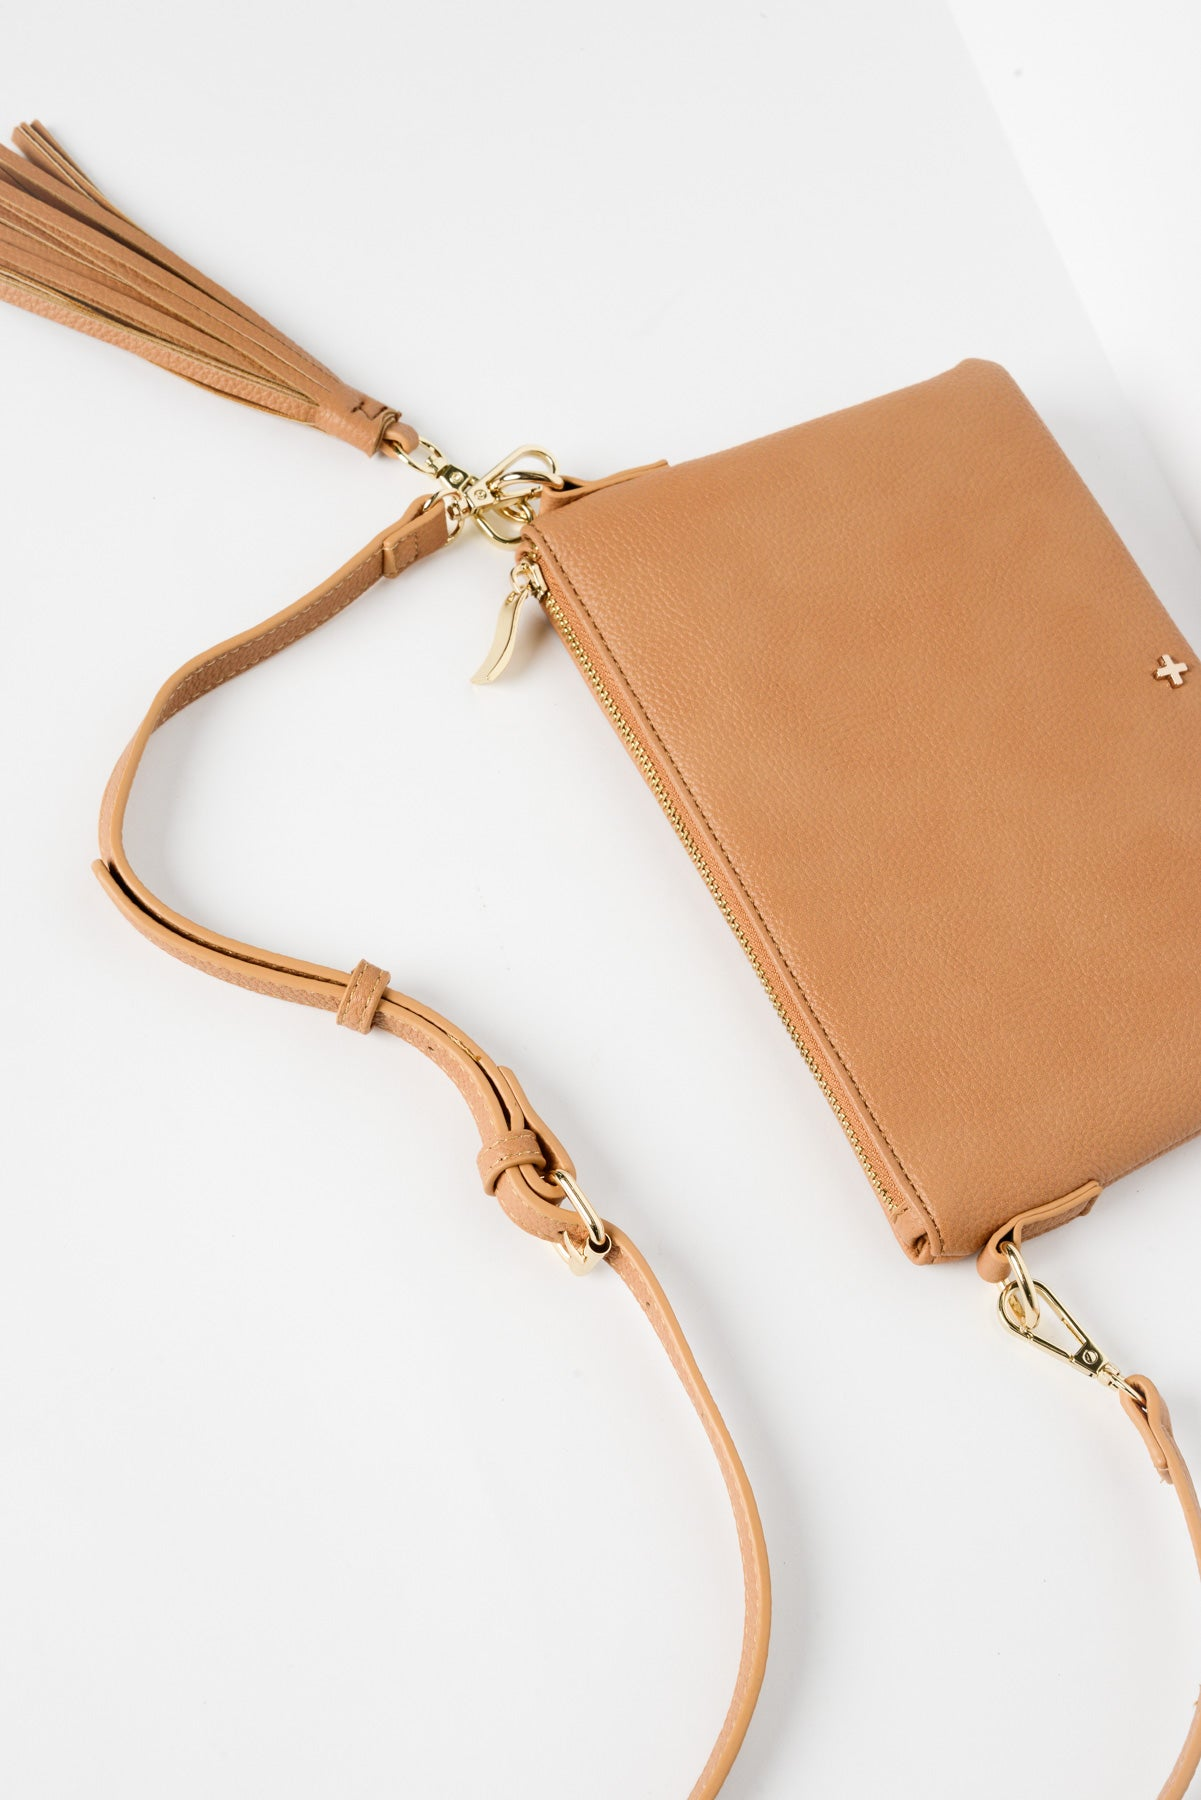 Kourtney Caramel Vegan Leather Clutch - Blue Bungalow